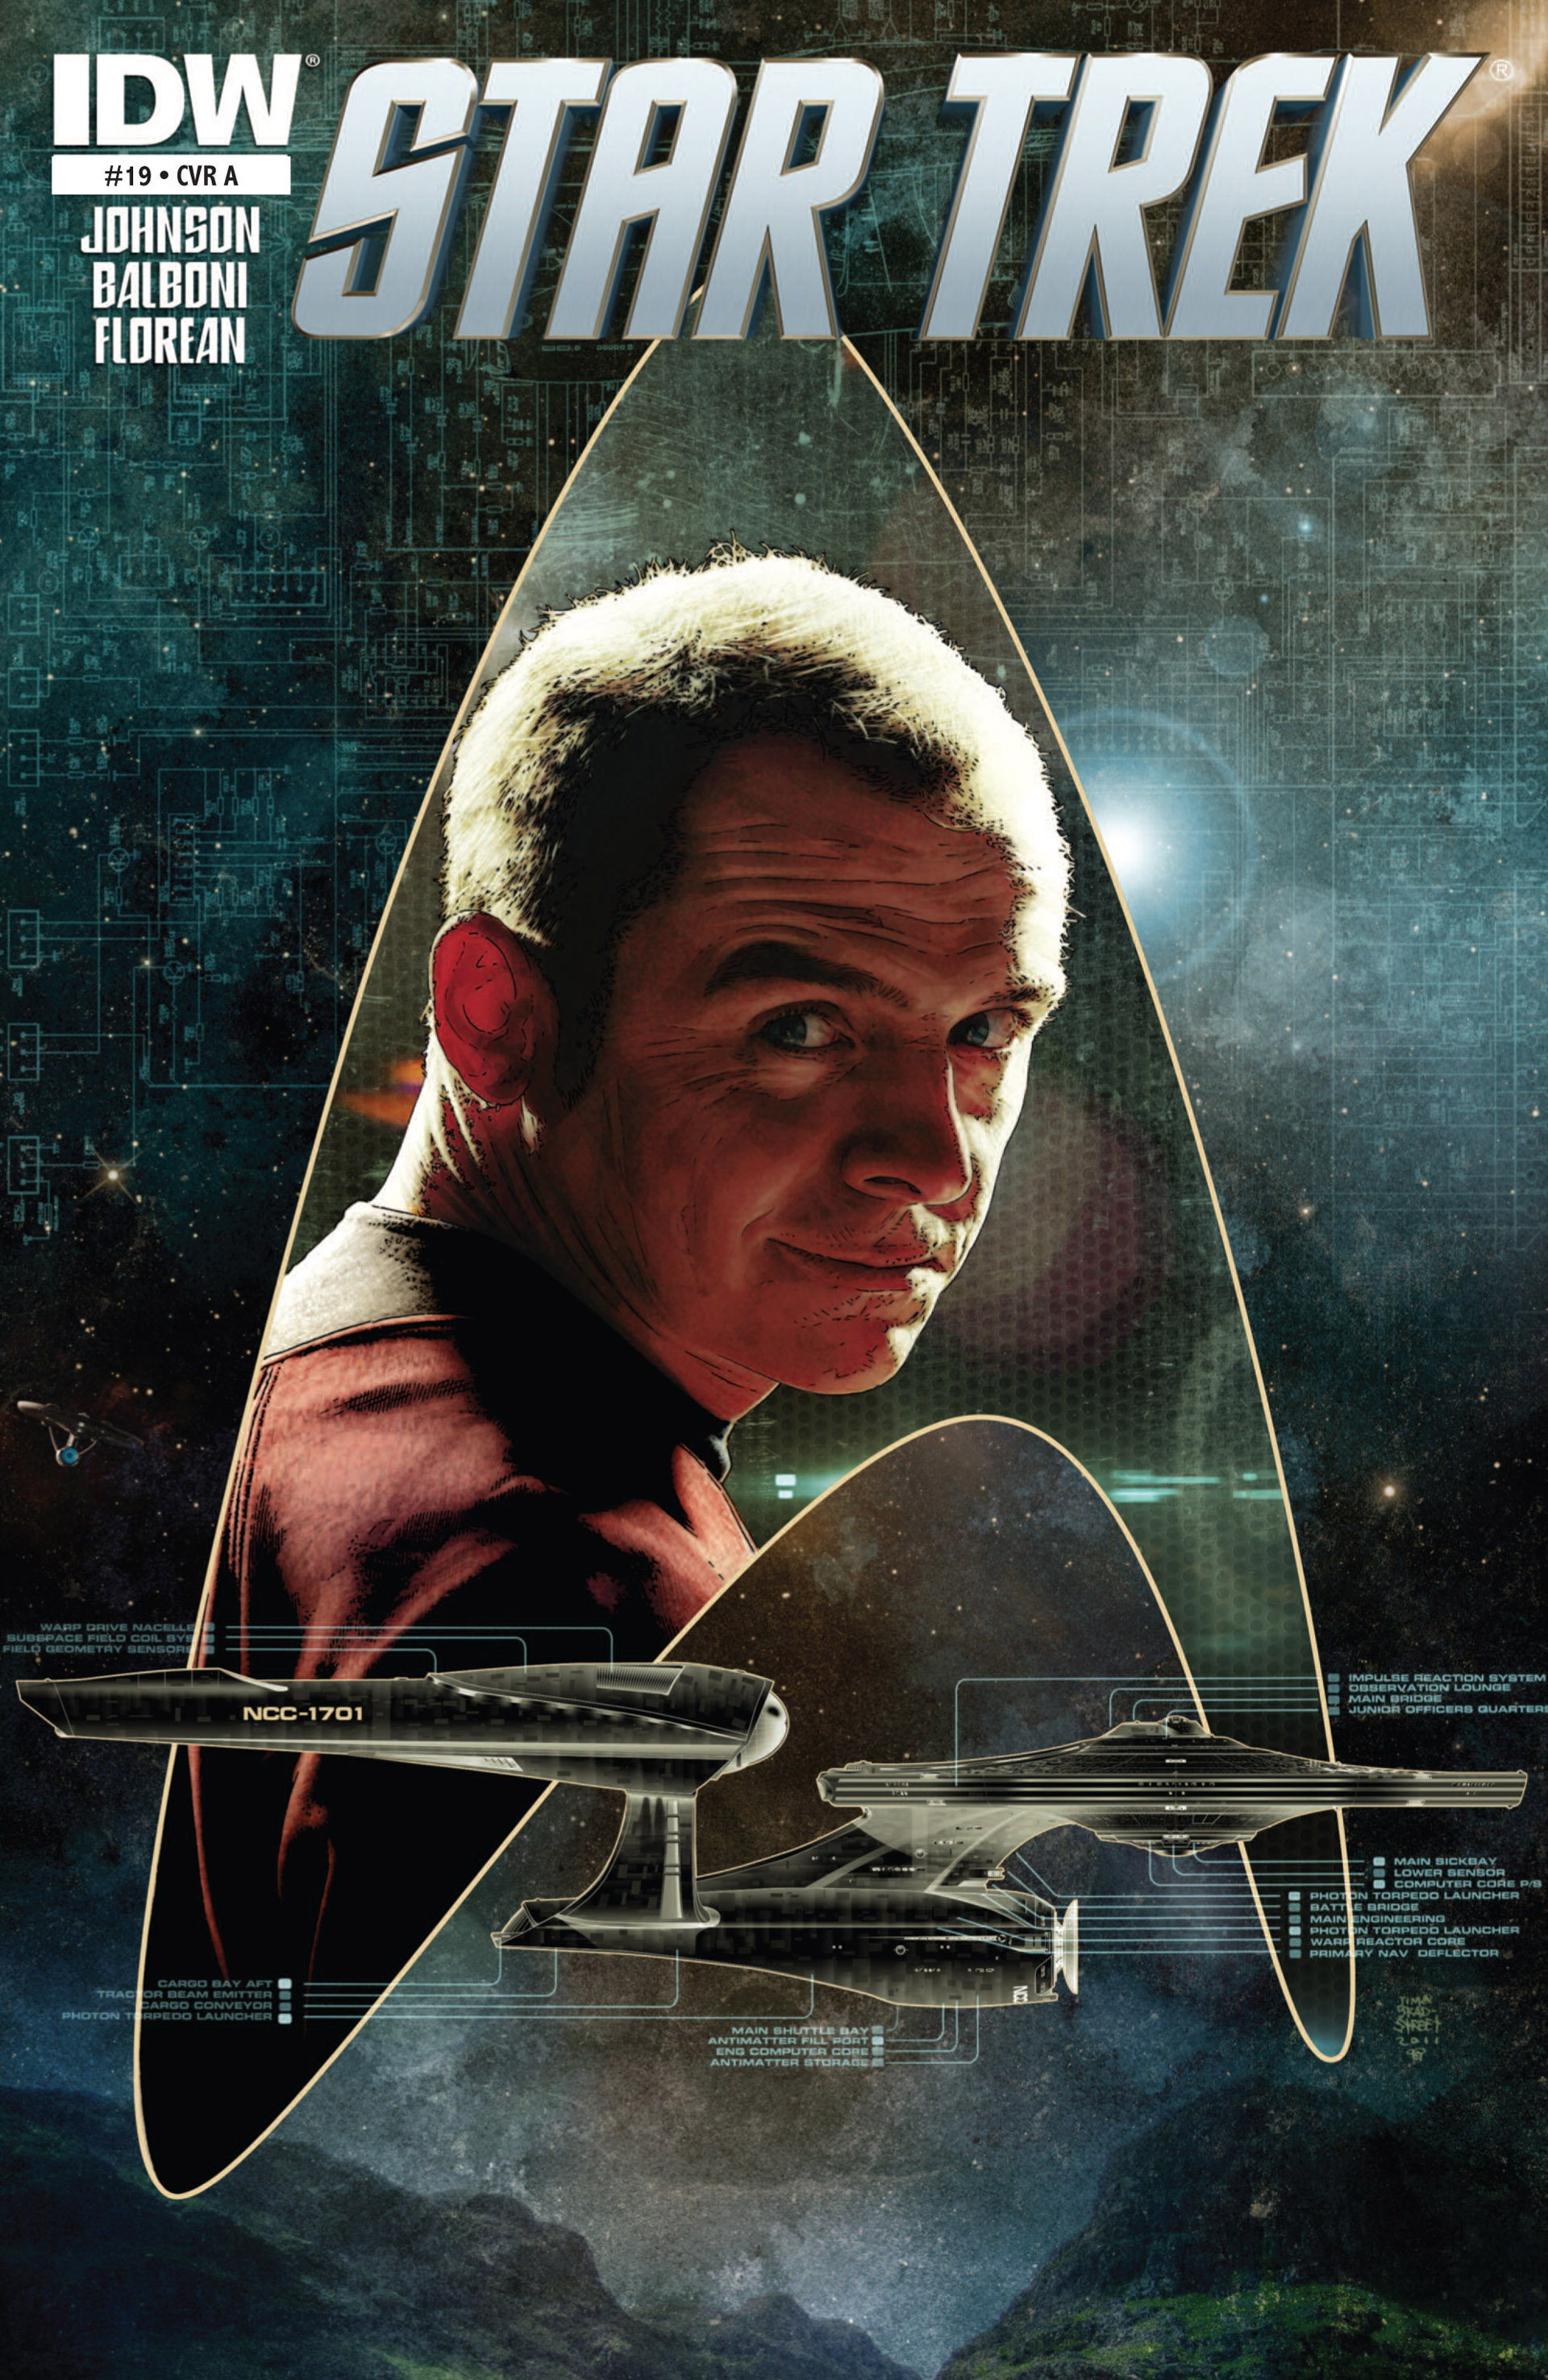 IDW Star Trek 19